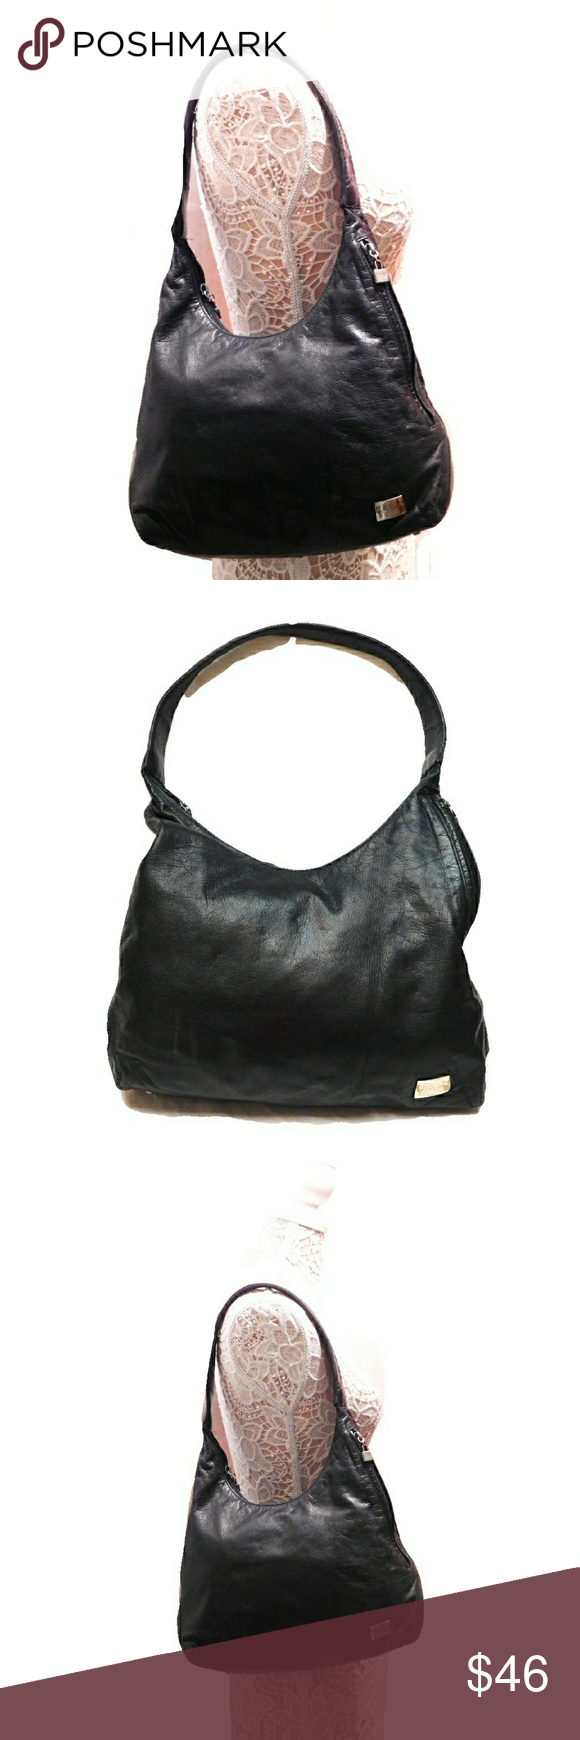 cf36884a68 PERLINA SOFT LEATHER SIDE ZIP CMPMT SHOULDER BAG PERLINA SHOULDER BAG WITH  SIDE ZIPPERS FOR EXTRA